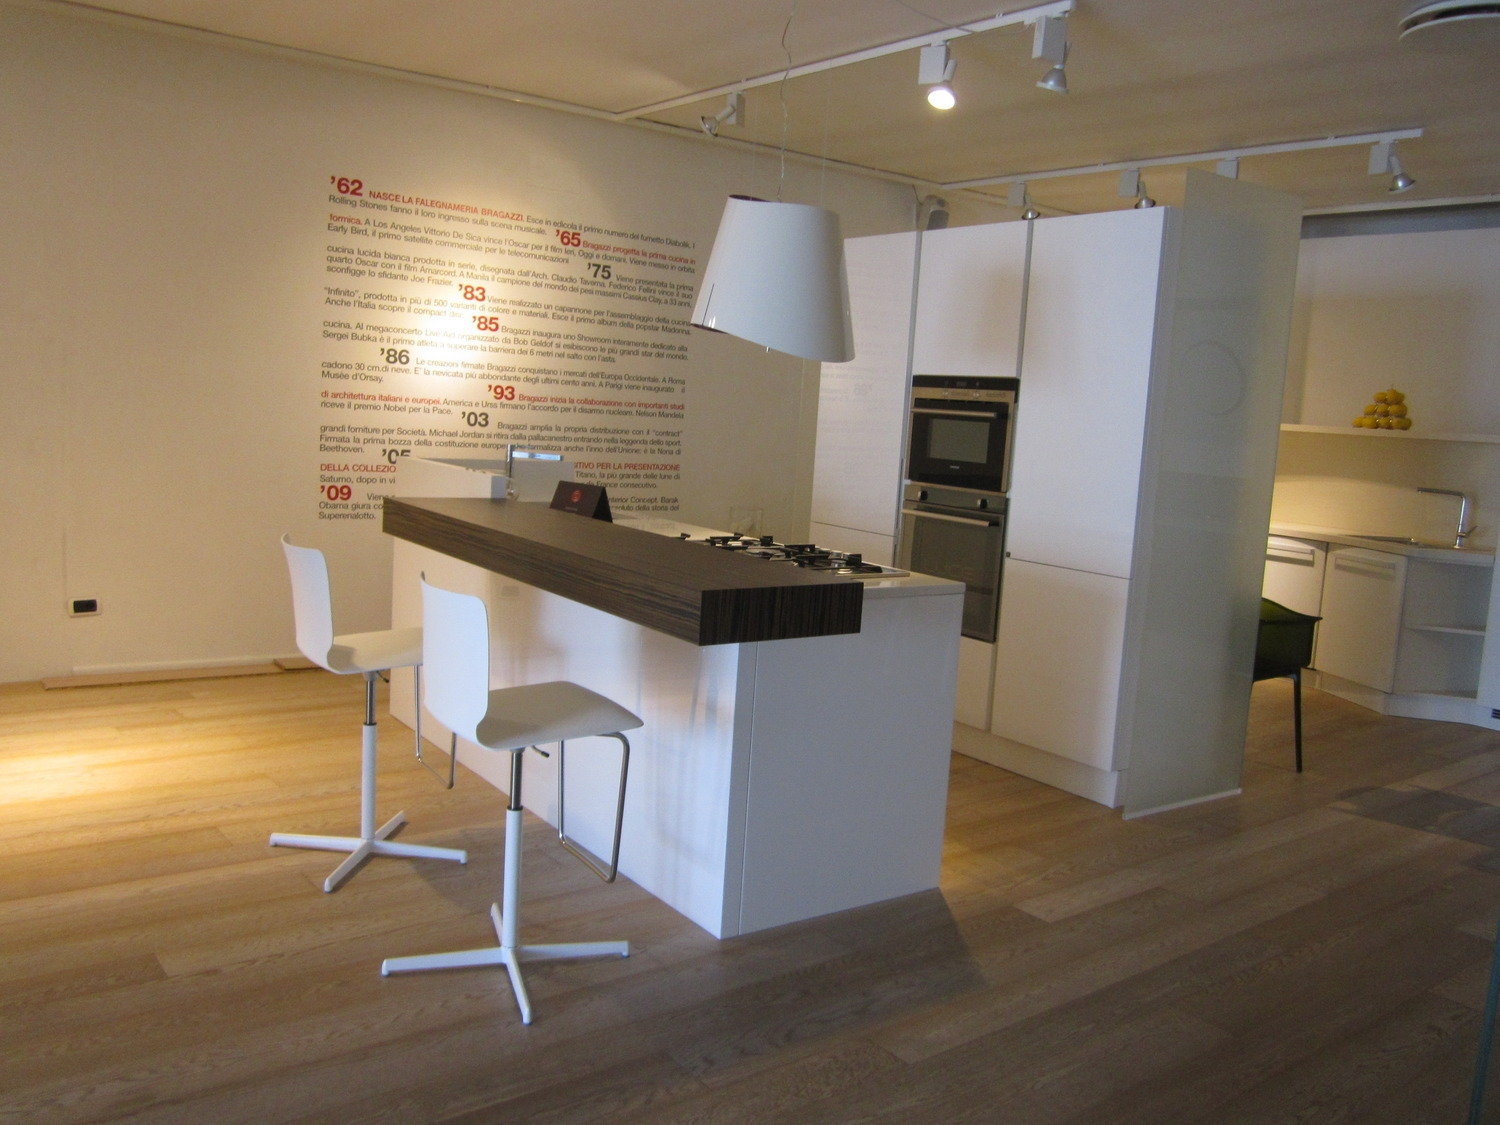 Beautiful scavolini o veneta cucine gallery ideas design 2017 - Opinioni veneta cucine ...